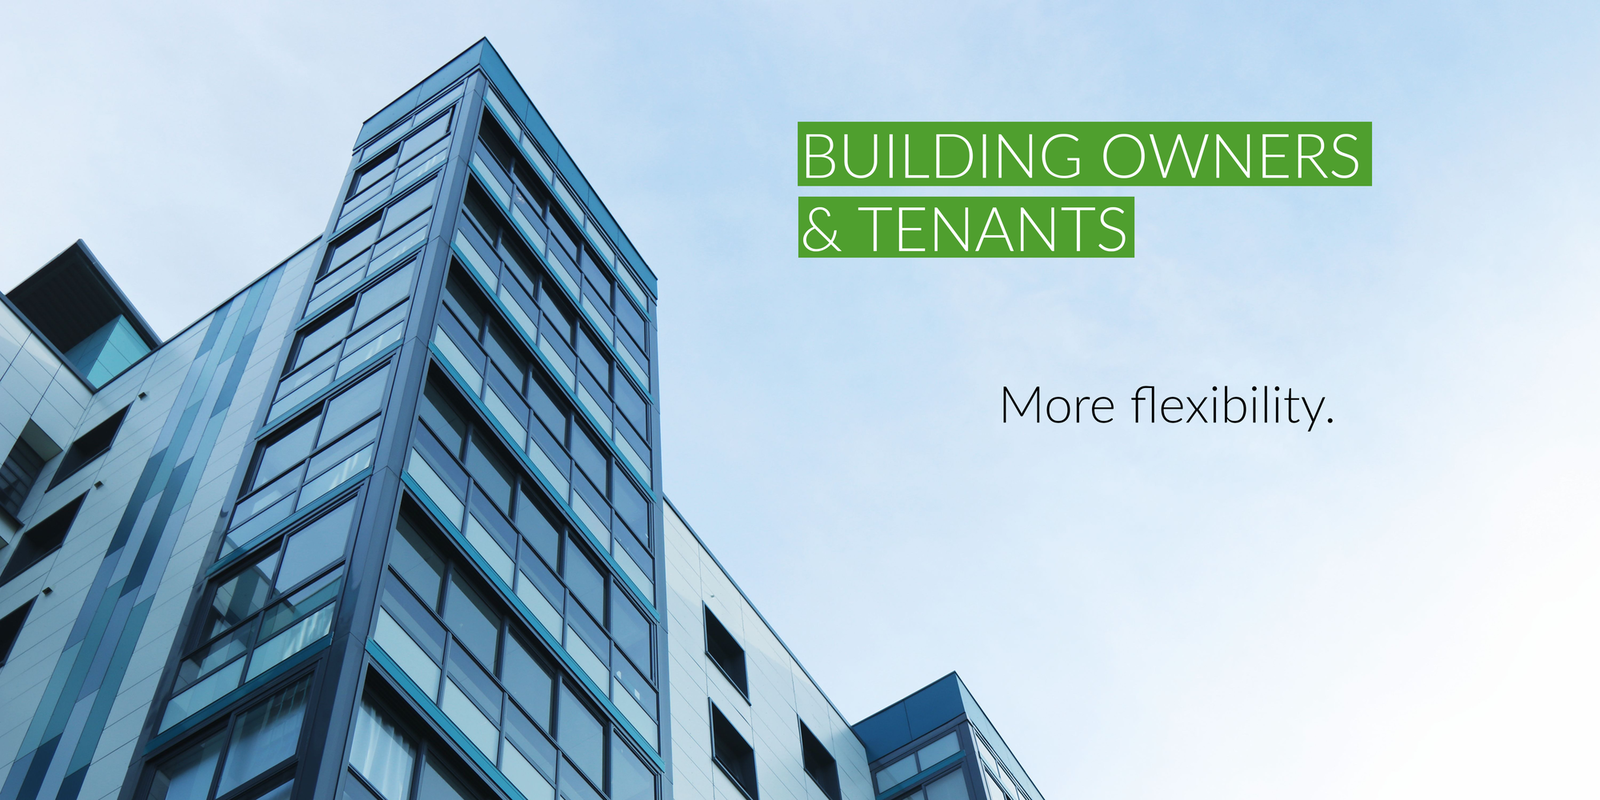 Building owners and tenants have more flexibility with DryTile